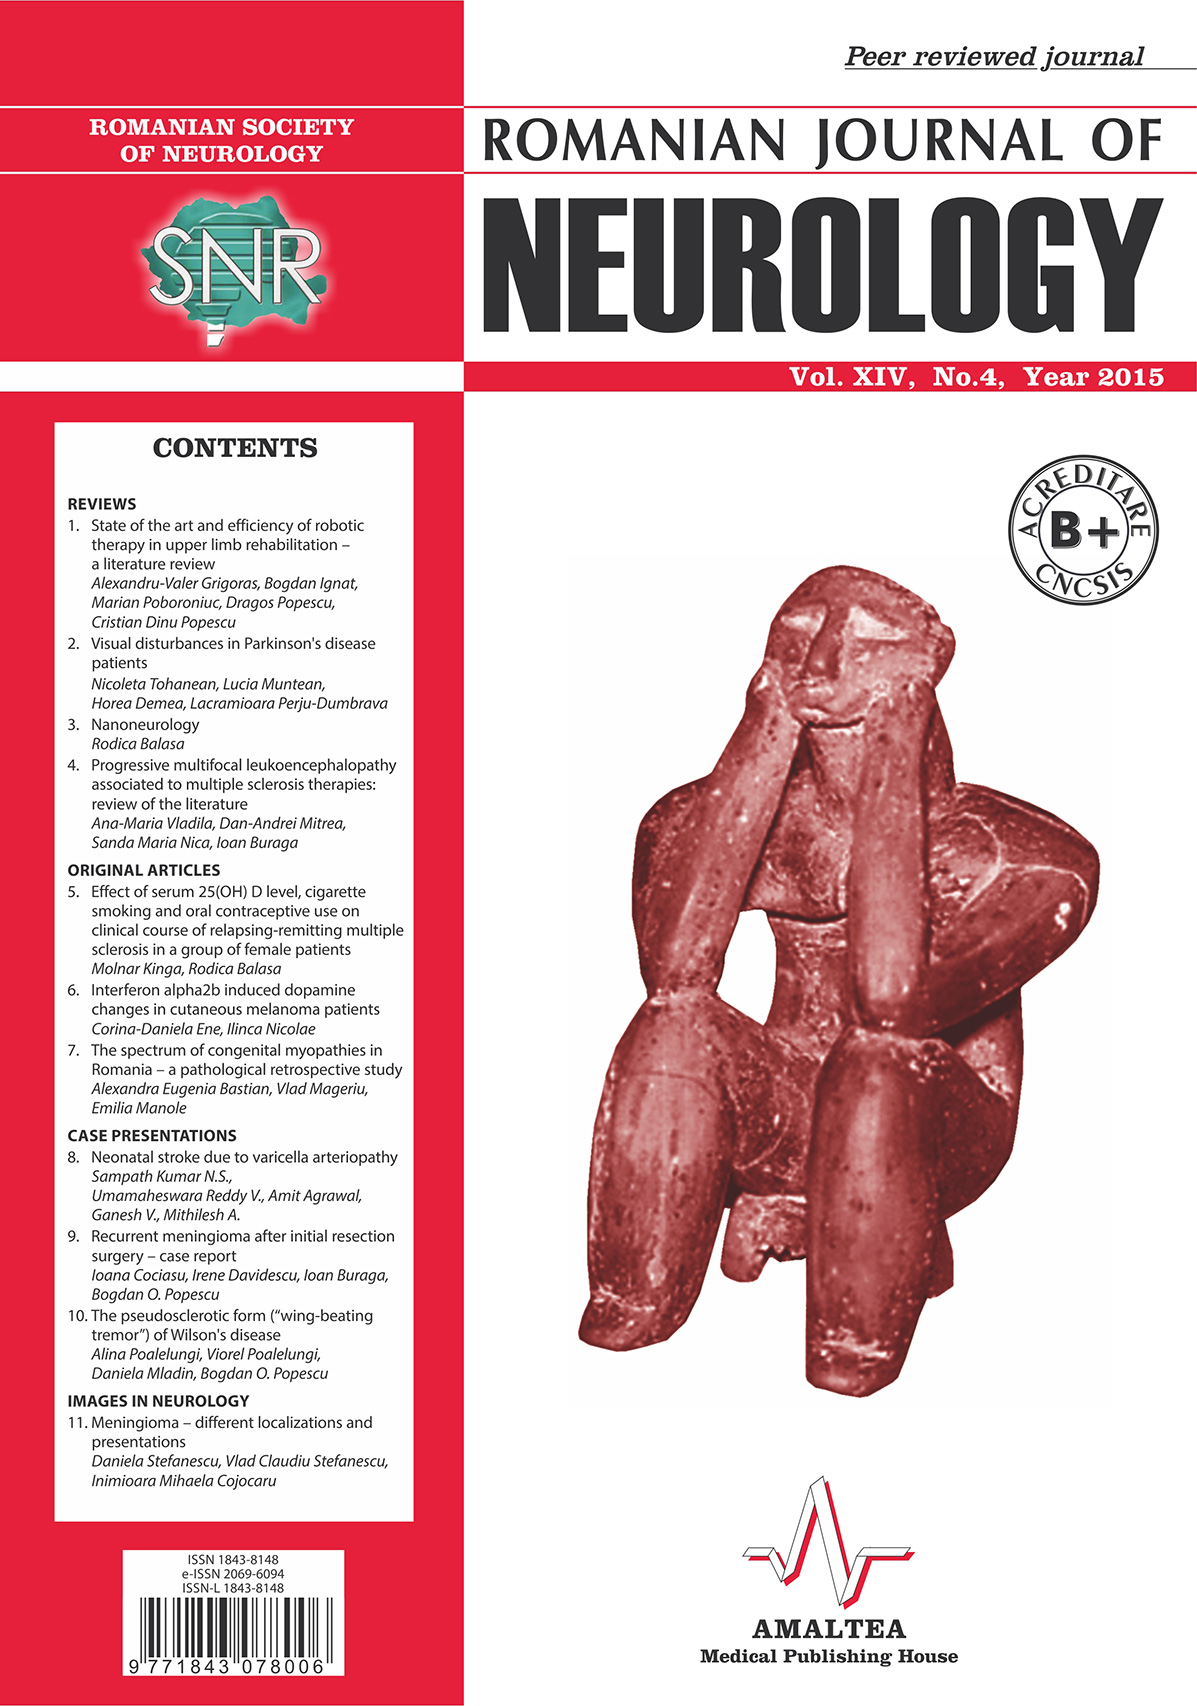 Romanian Journal of Neurology, Volume XIV, No. 4, 2015